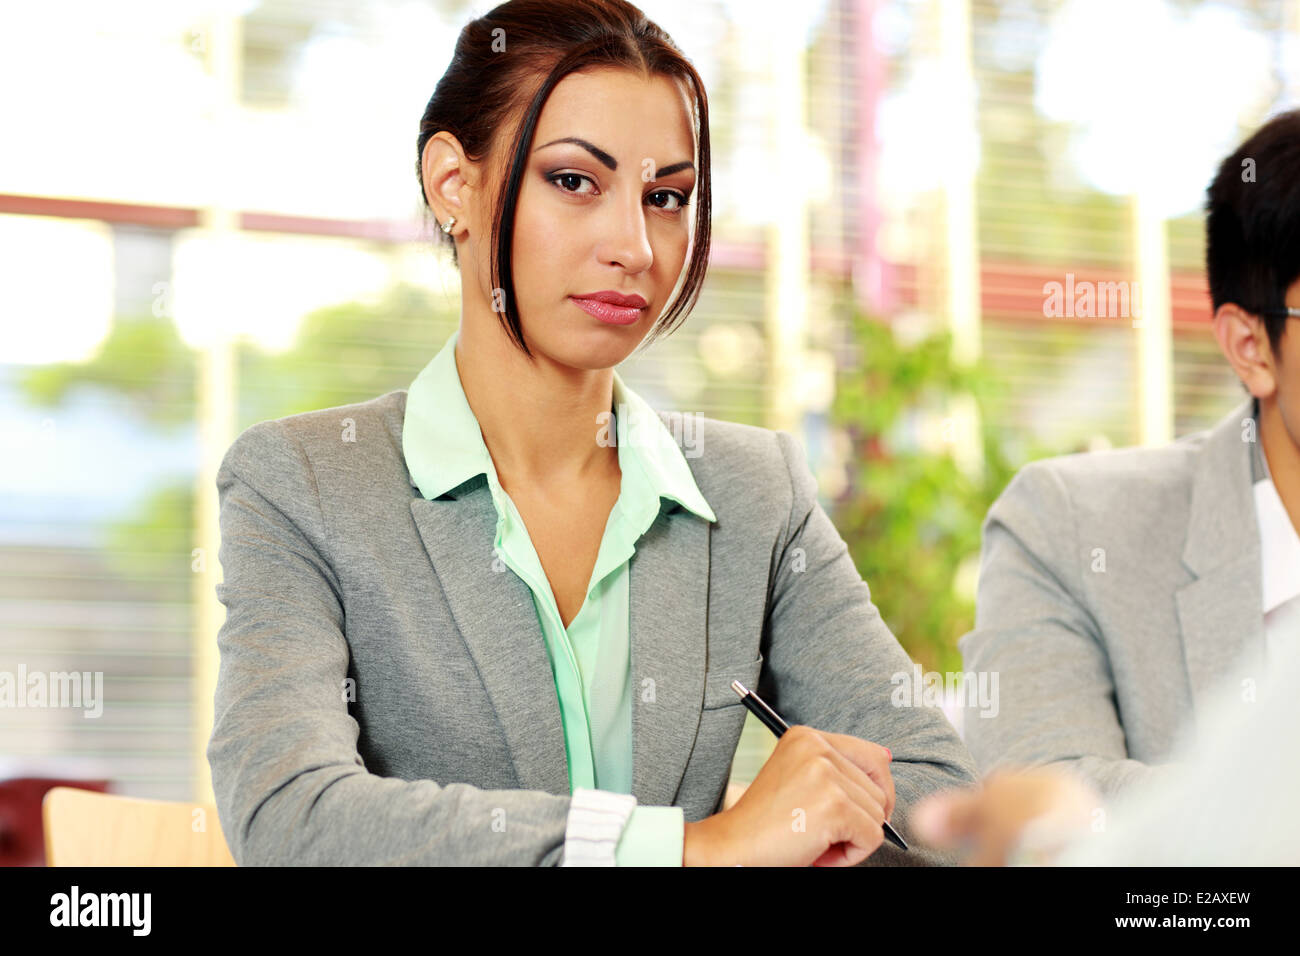 Portrait of a serious businesswoman in office Photo Stock